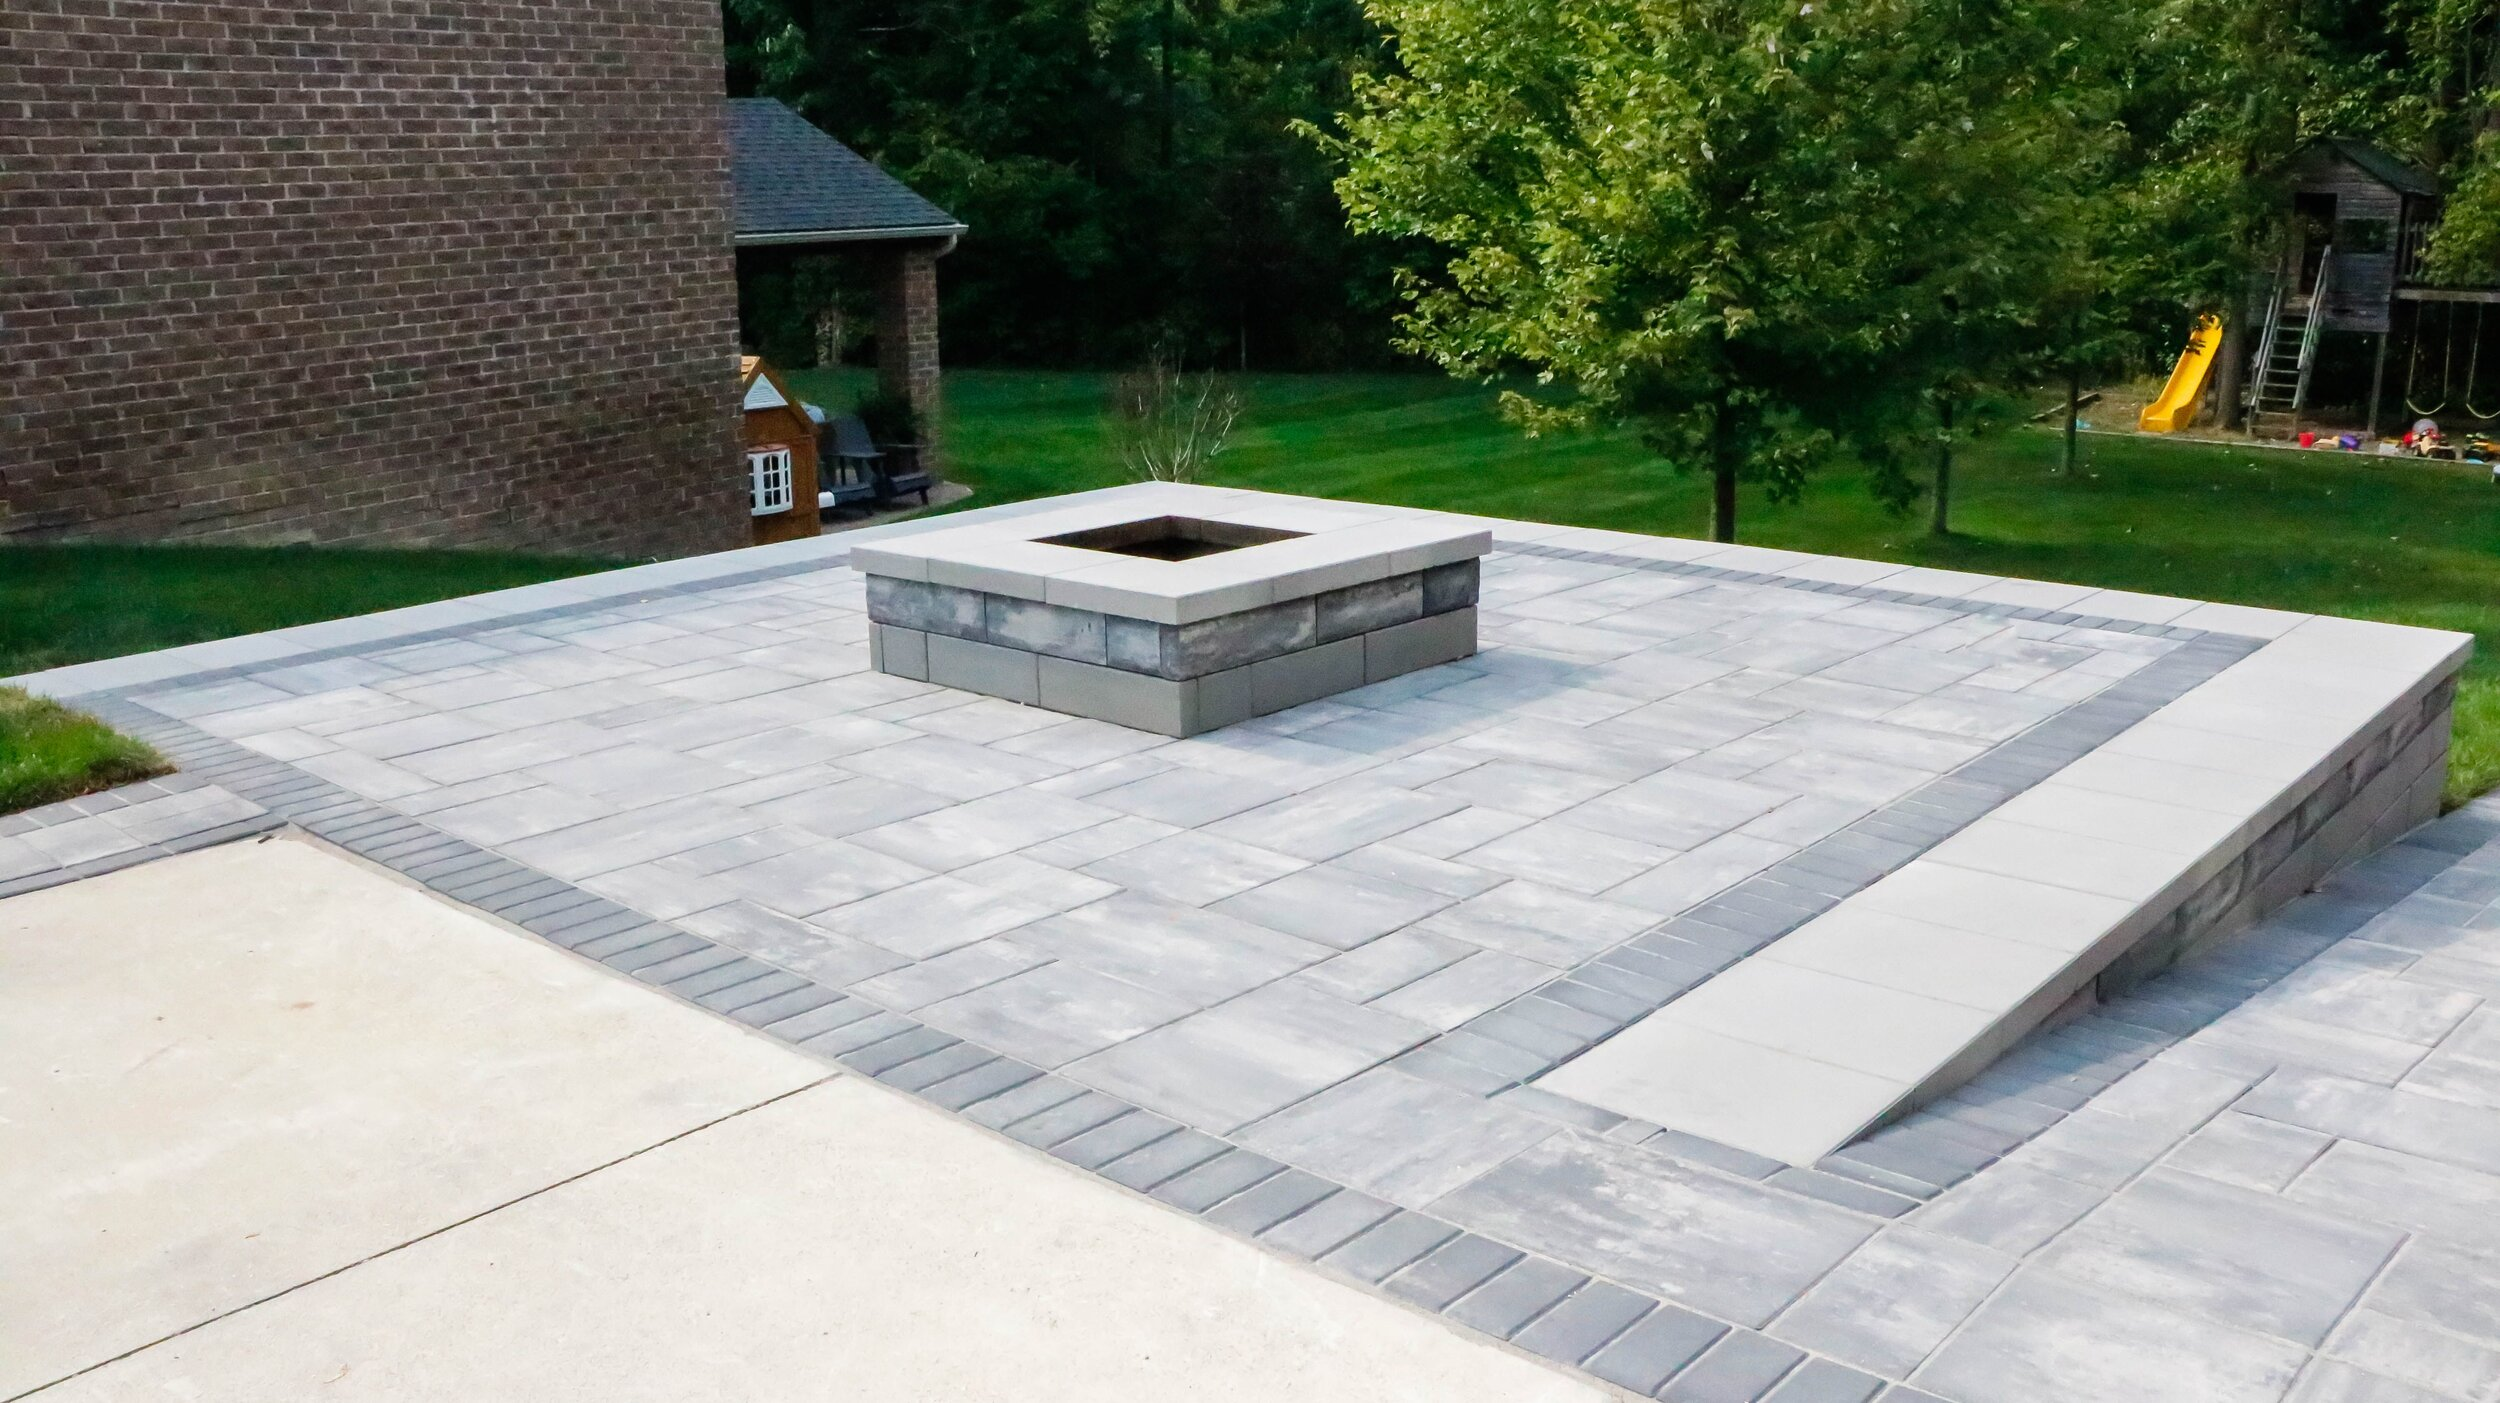 3 Types Of Patio Pavers Well Suited To, Large Paving Stones Patio